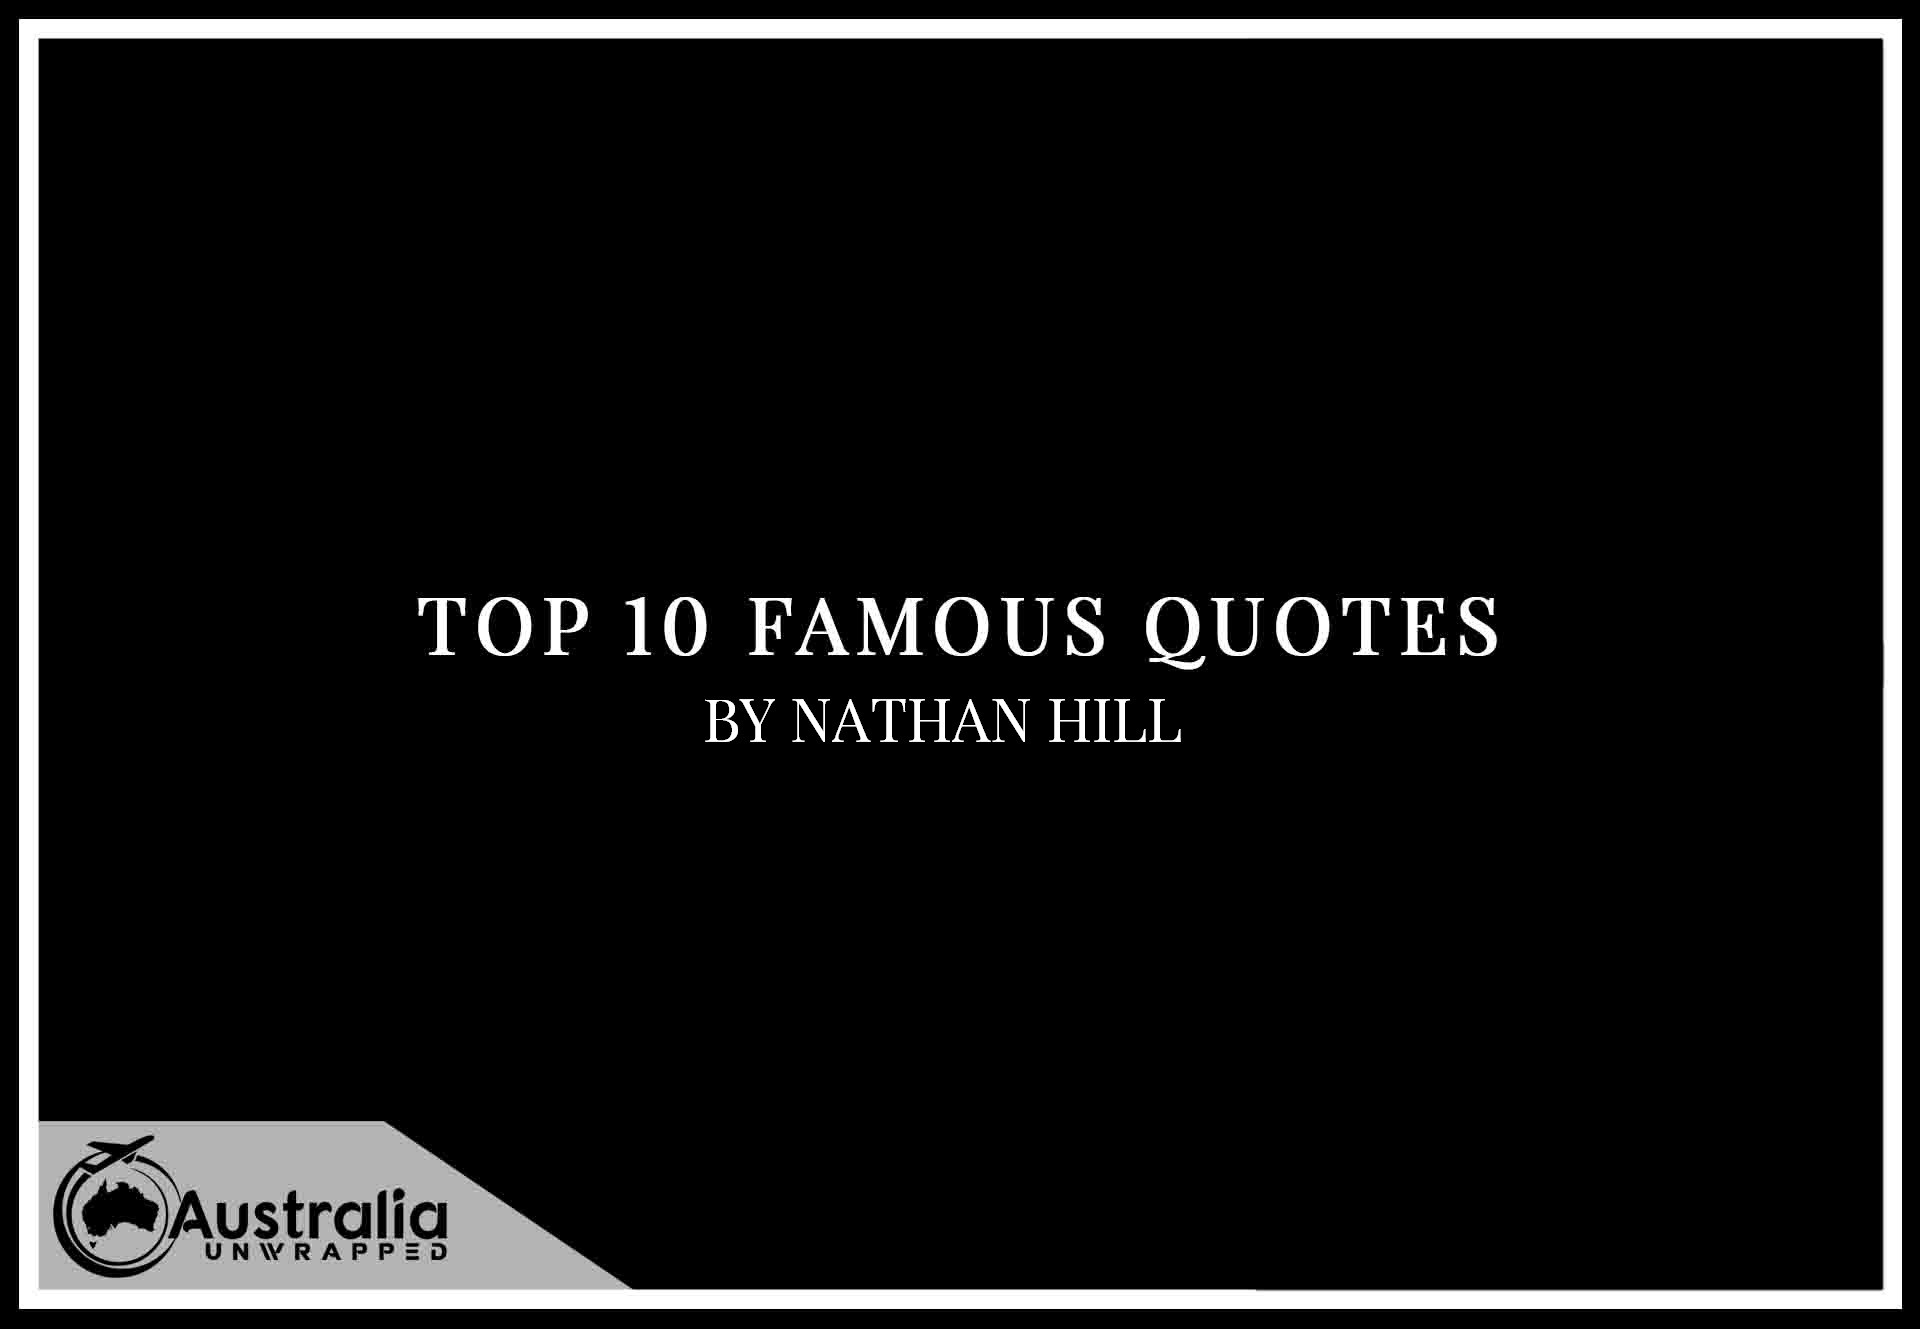 Top 10 Famous Quotes by Author Nathan Hill